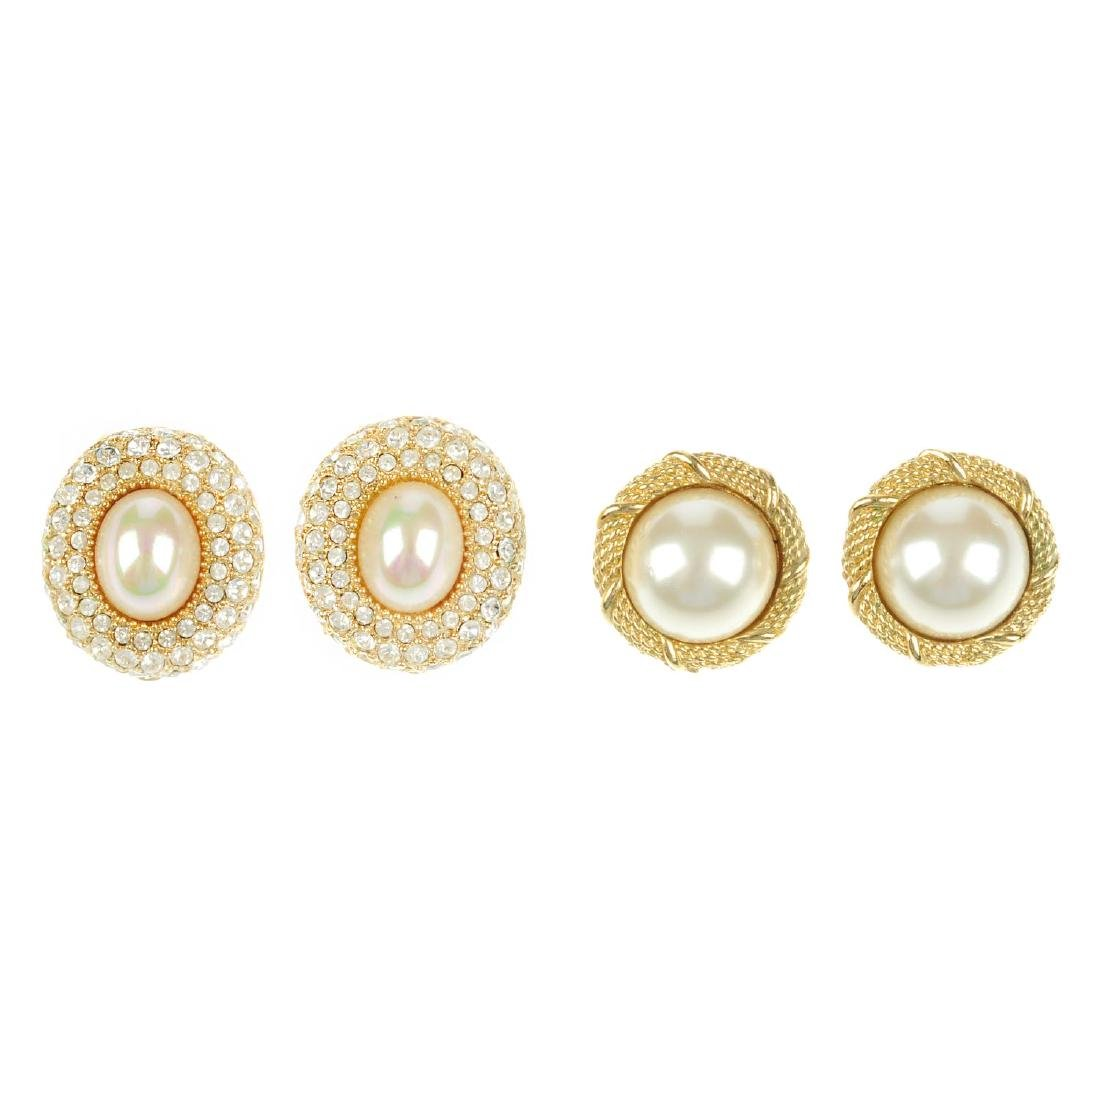 CHRISTIAN DIOR - two pairs of clip earrings. One pair